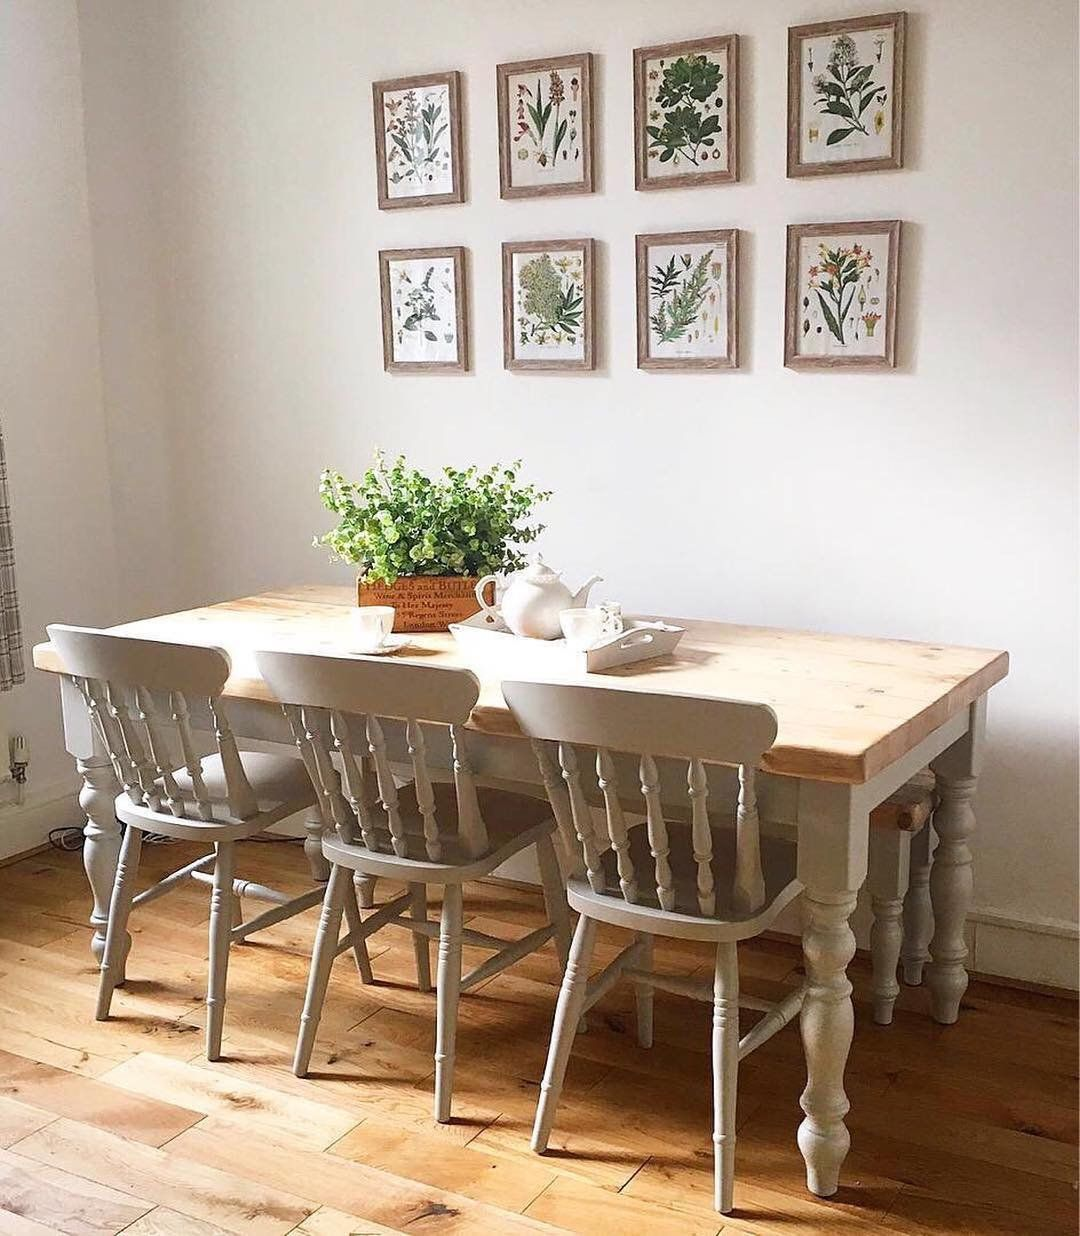 6ft Farmhouse Dining Table With Matching Bench And 3 Chairs Made